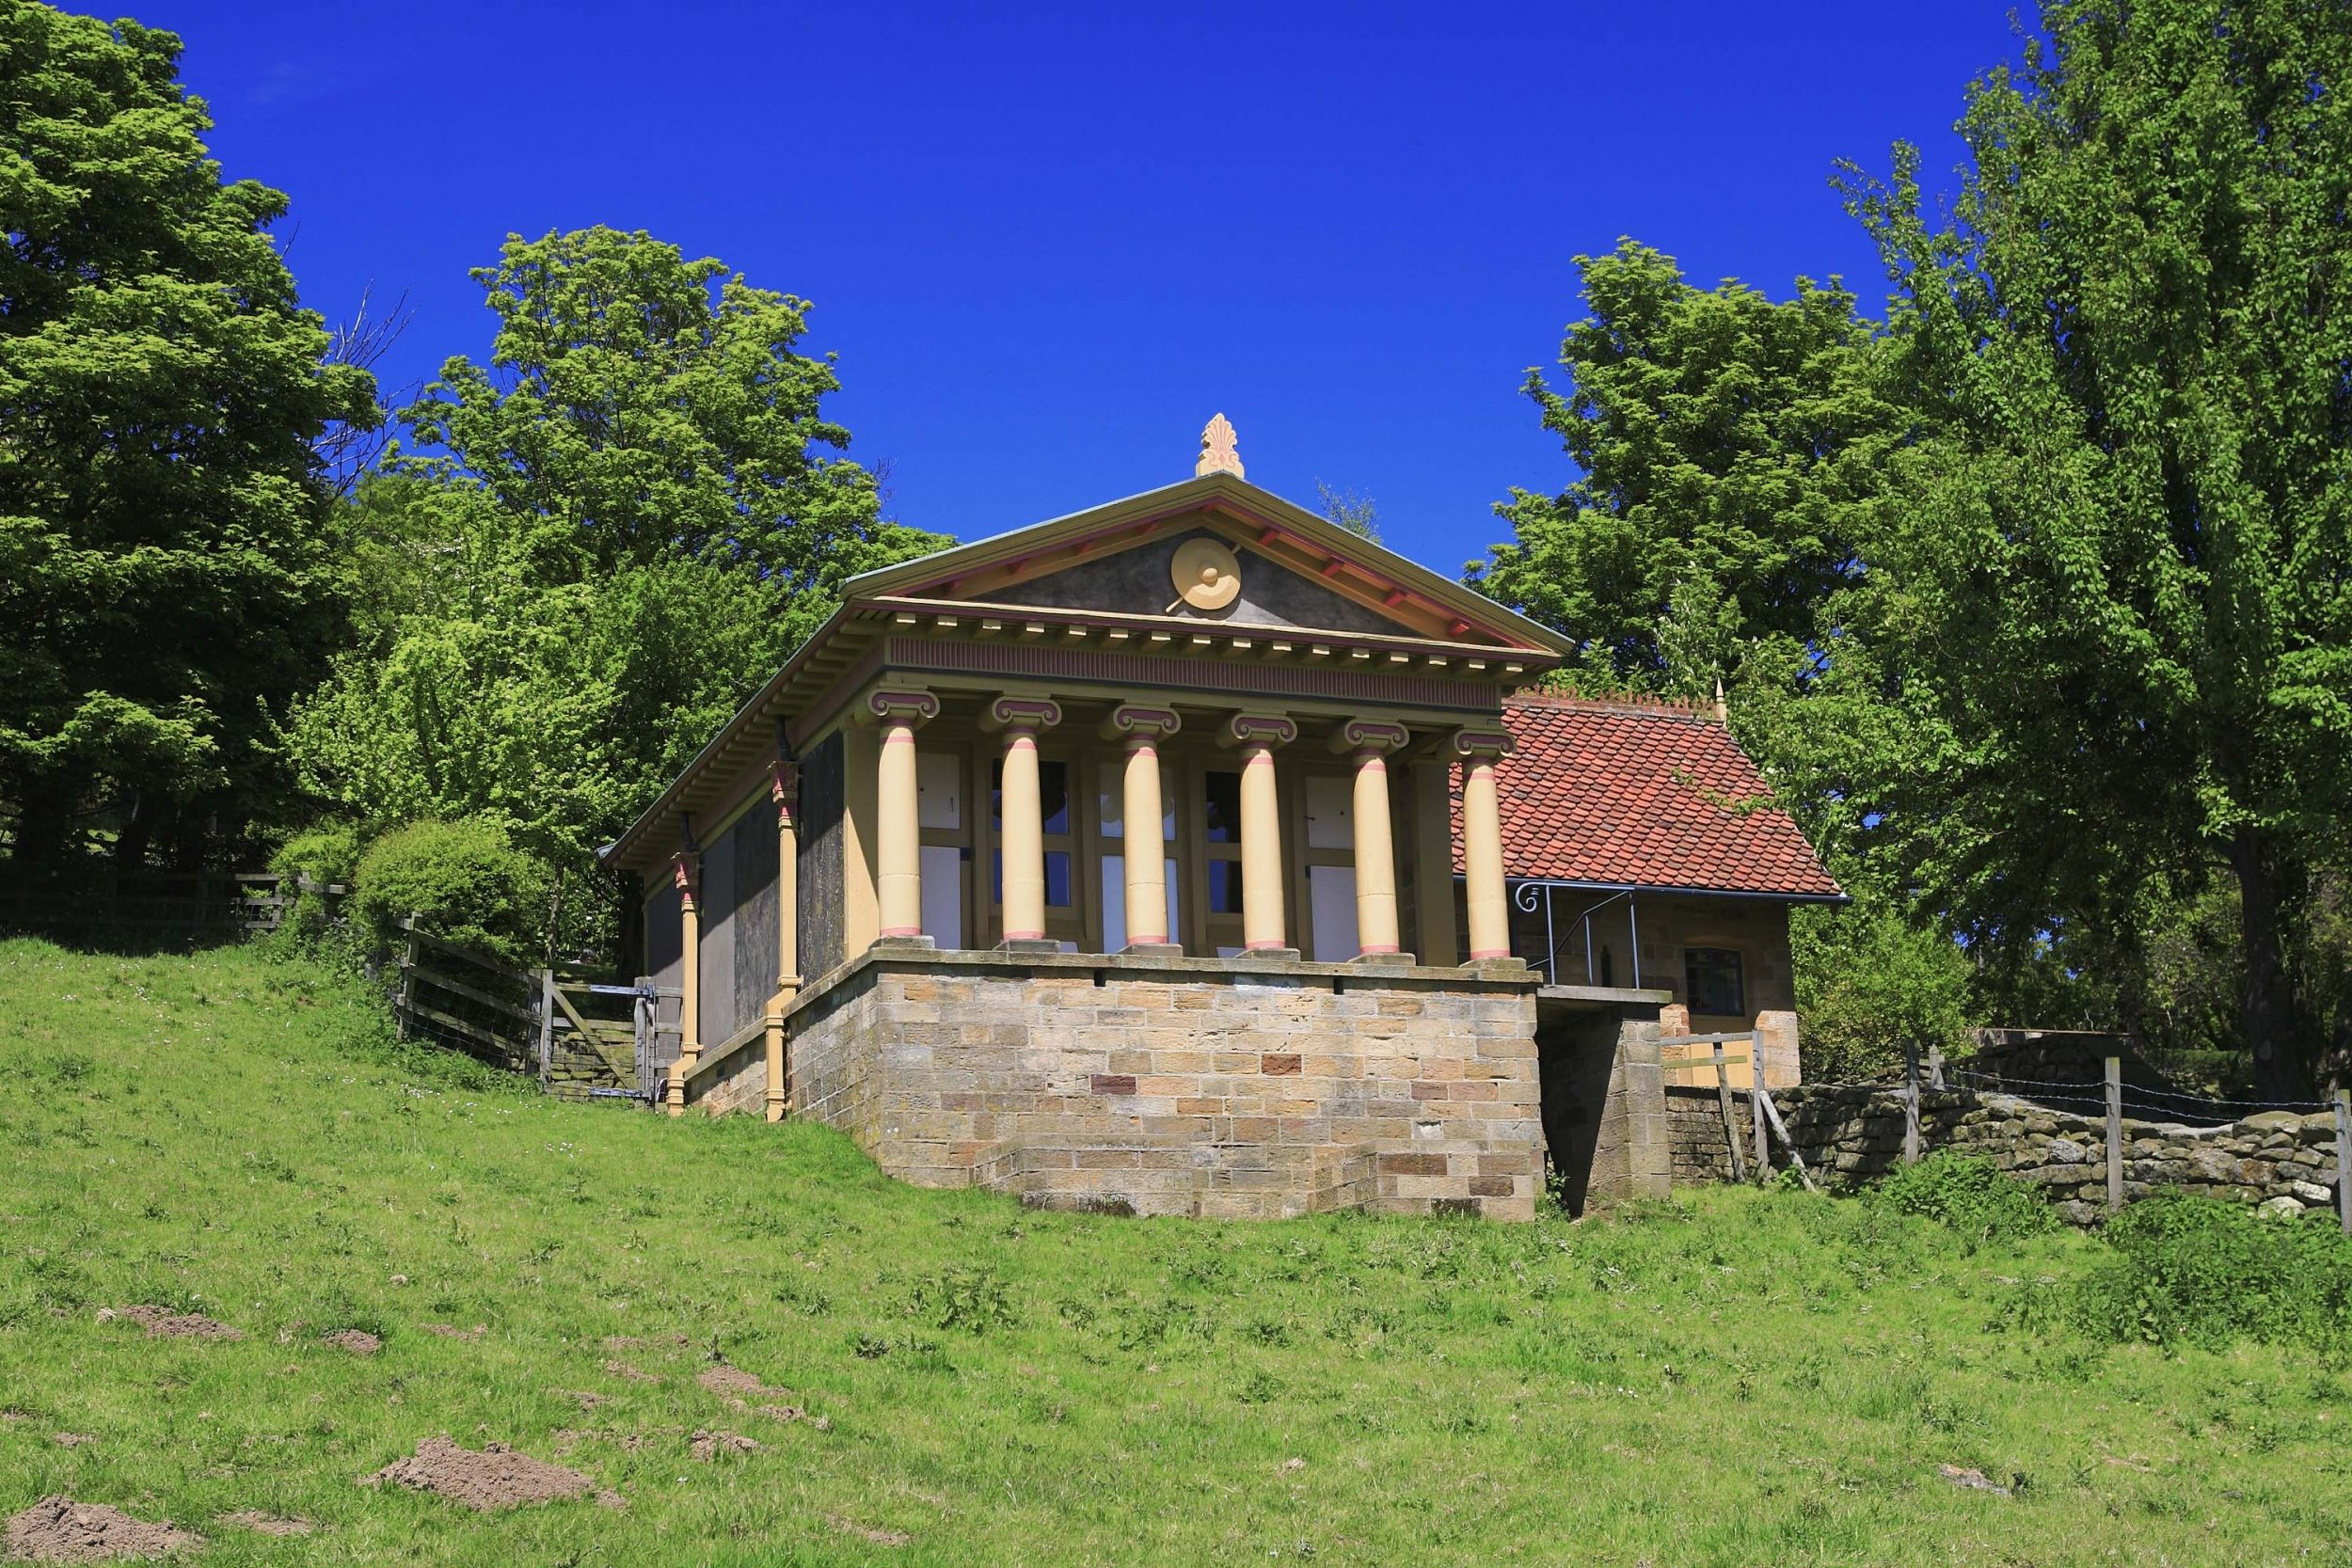 The Pigsty North Yorkshire Sleeps 2 Once A Sty Squire Barry Of Fyling Hall Is Said To Have Been Inspired By Clical Architecture He Came Across In